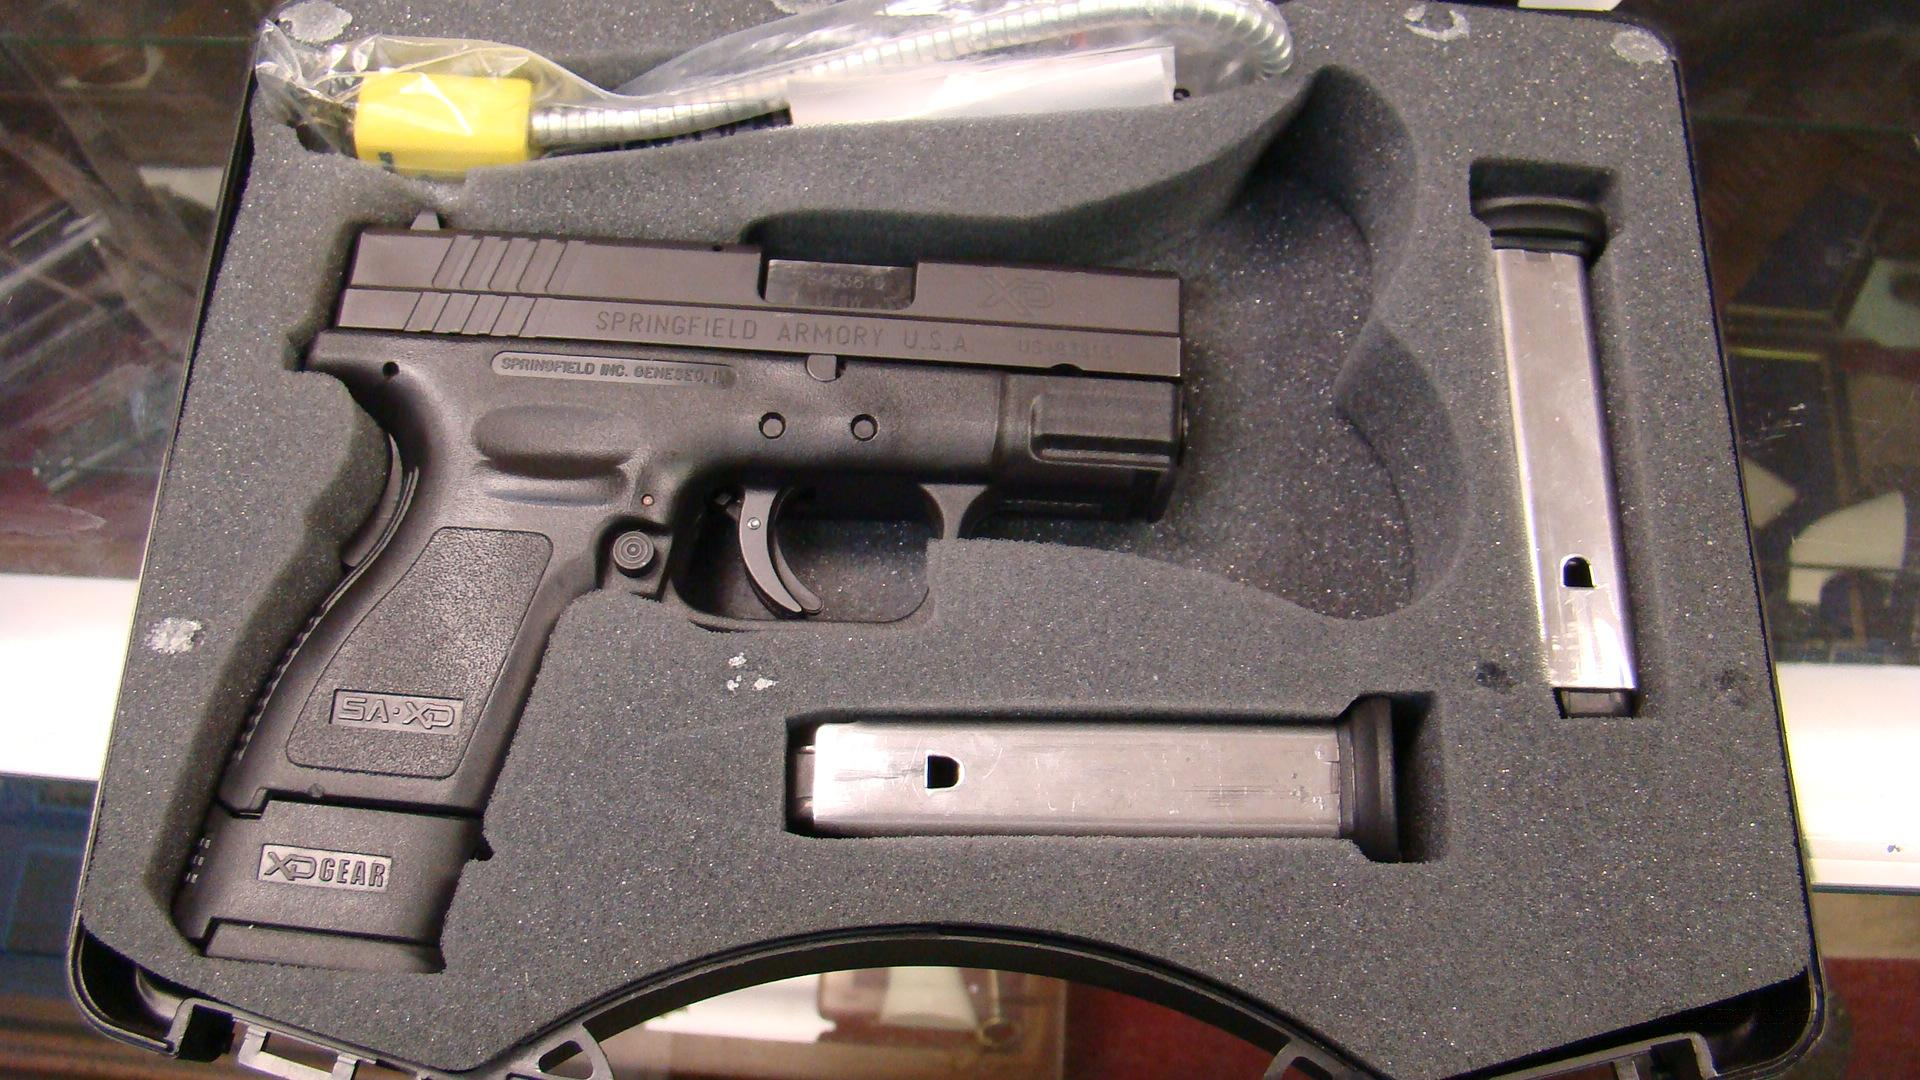 SPRINGFIELD XD 40 SUB COMPACT  40 SW CAL  Guns > Pistols > Springfield Armory Pistols > XD (eXtreme Duty)